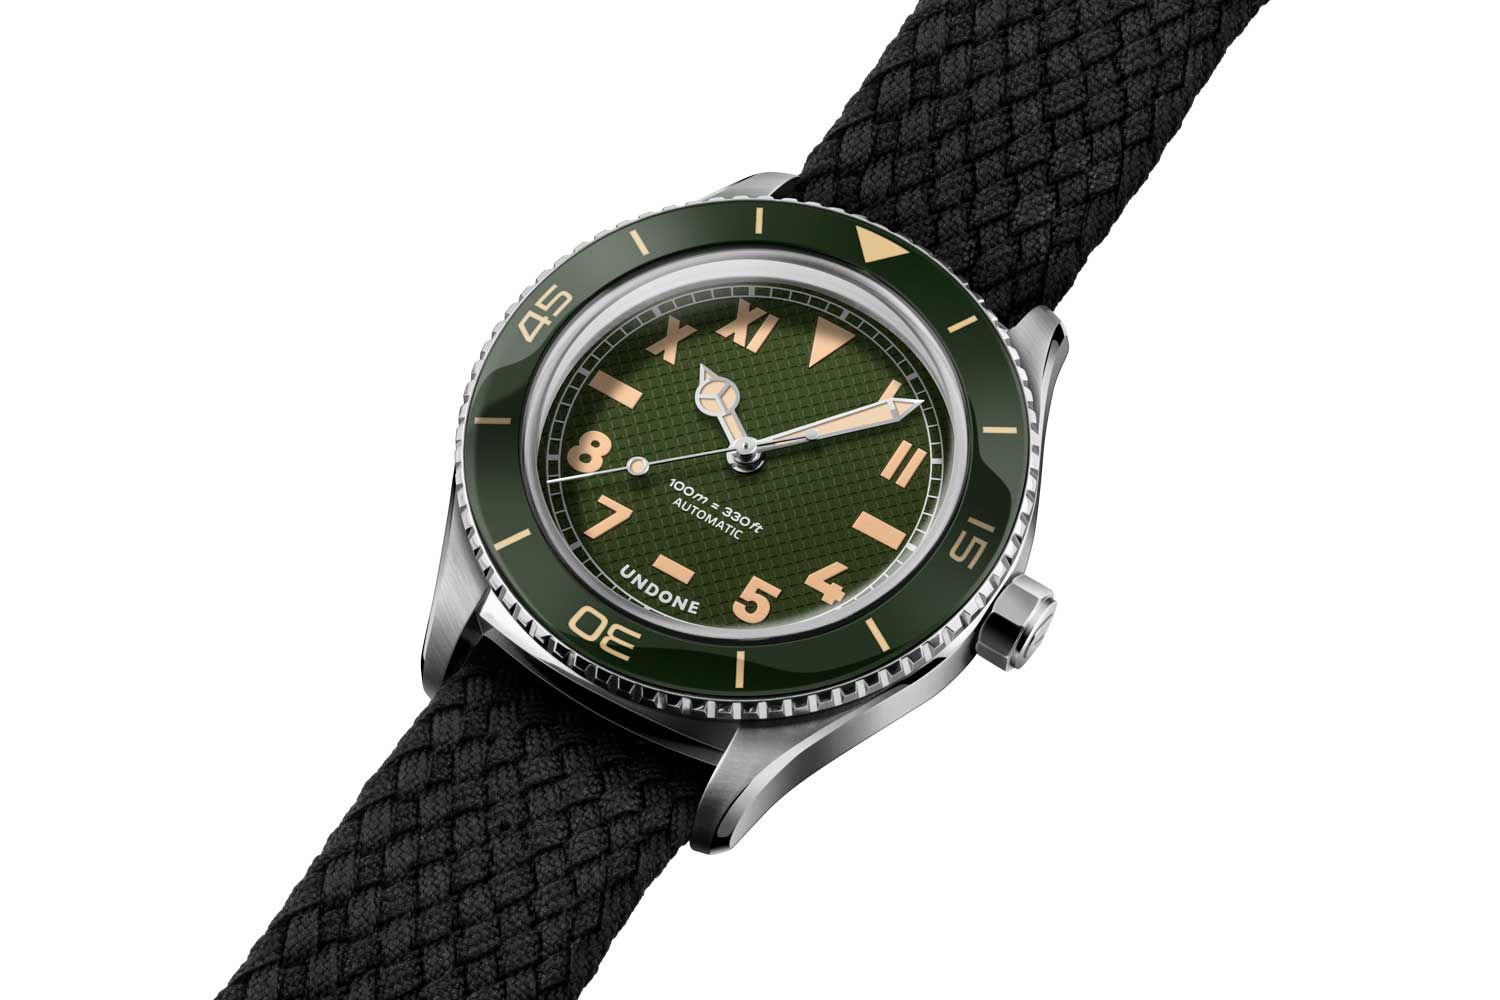 The Basecamp Cali comes with a black, blue or green dial configuration